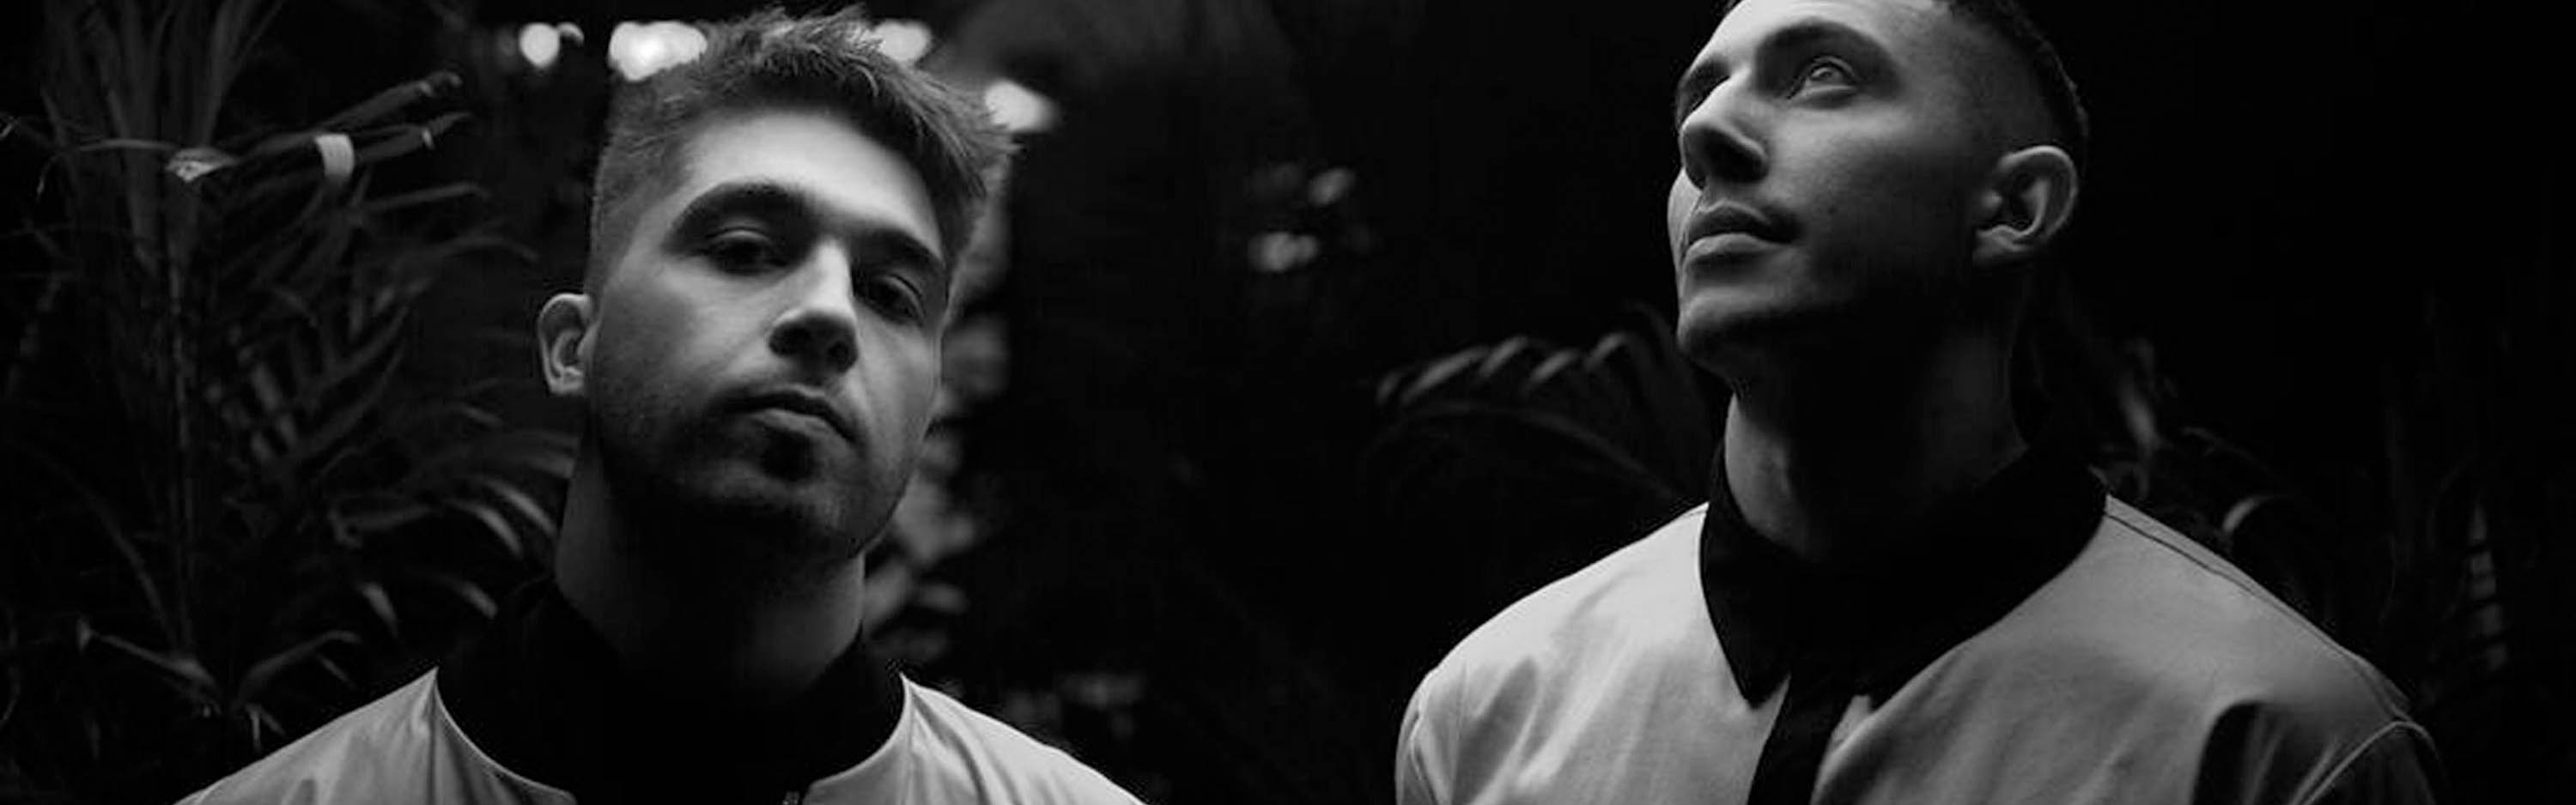 majid jordan photo-credit-nathian-legion-extralarge